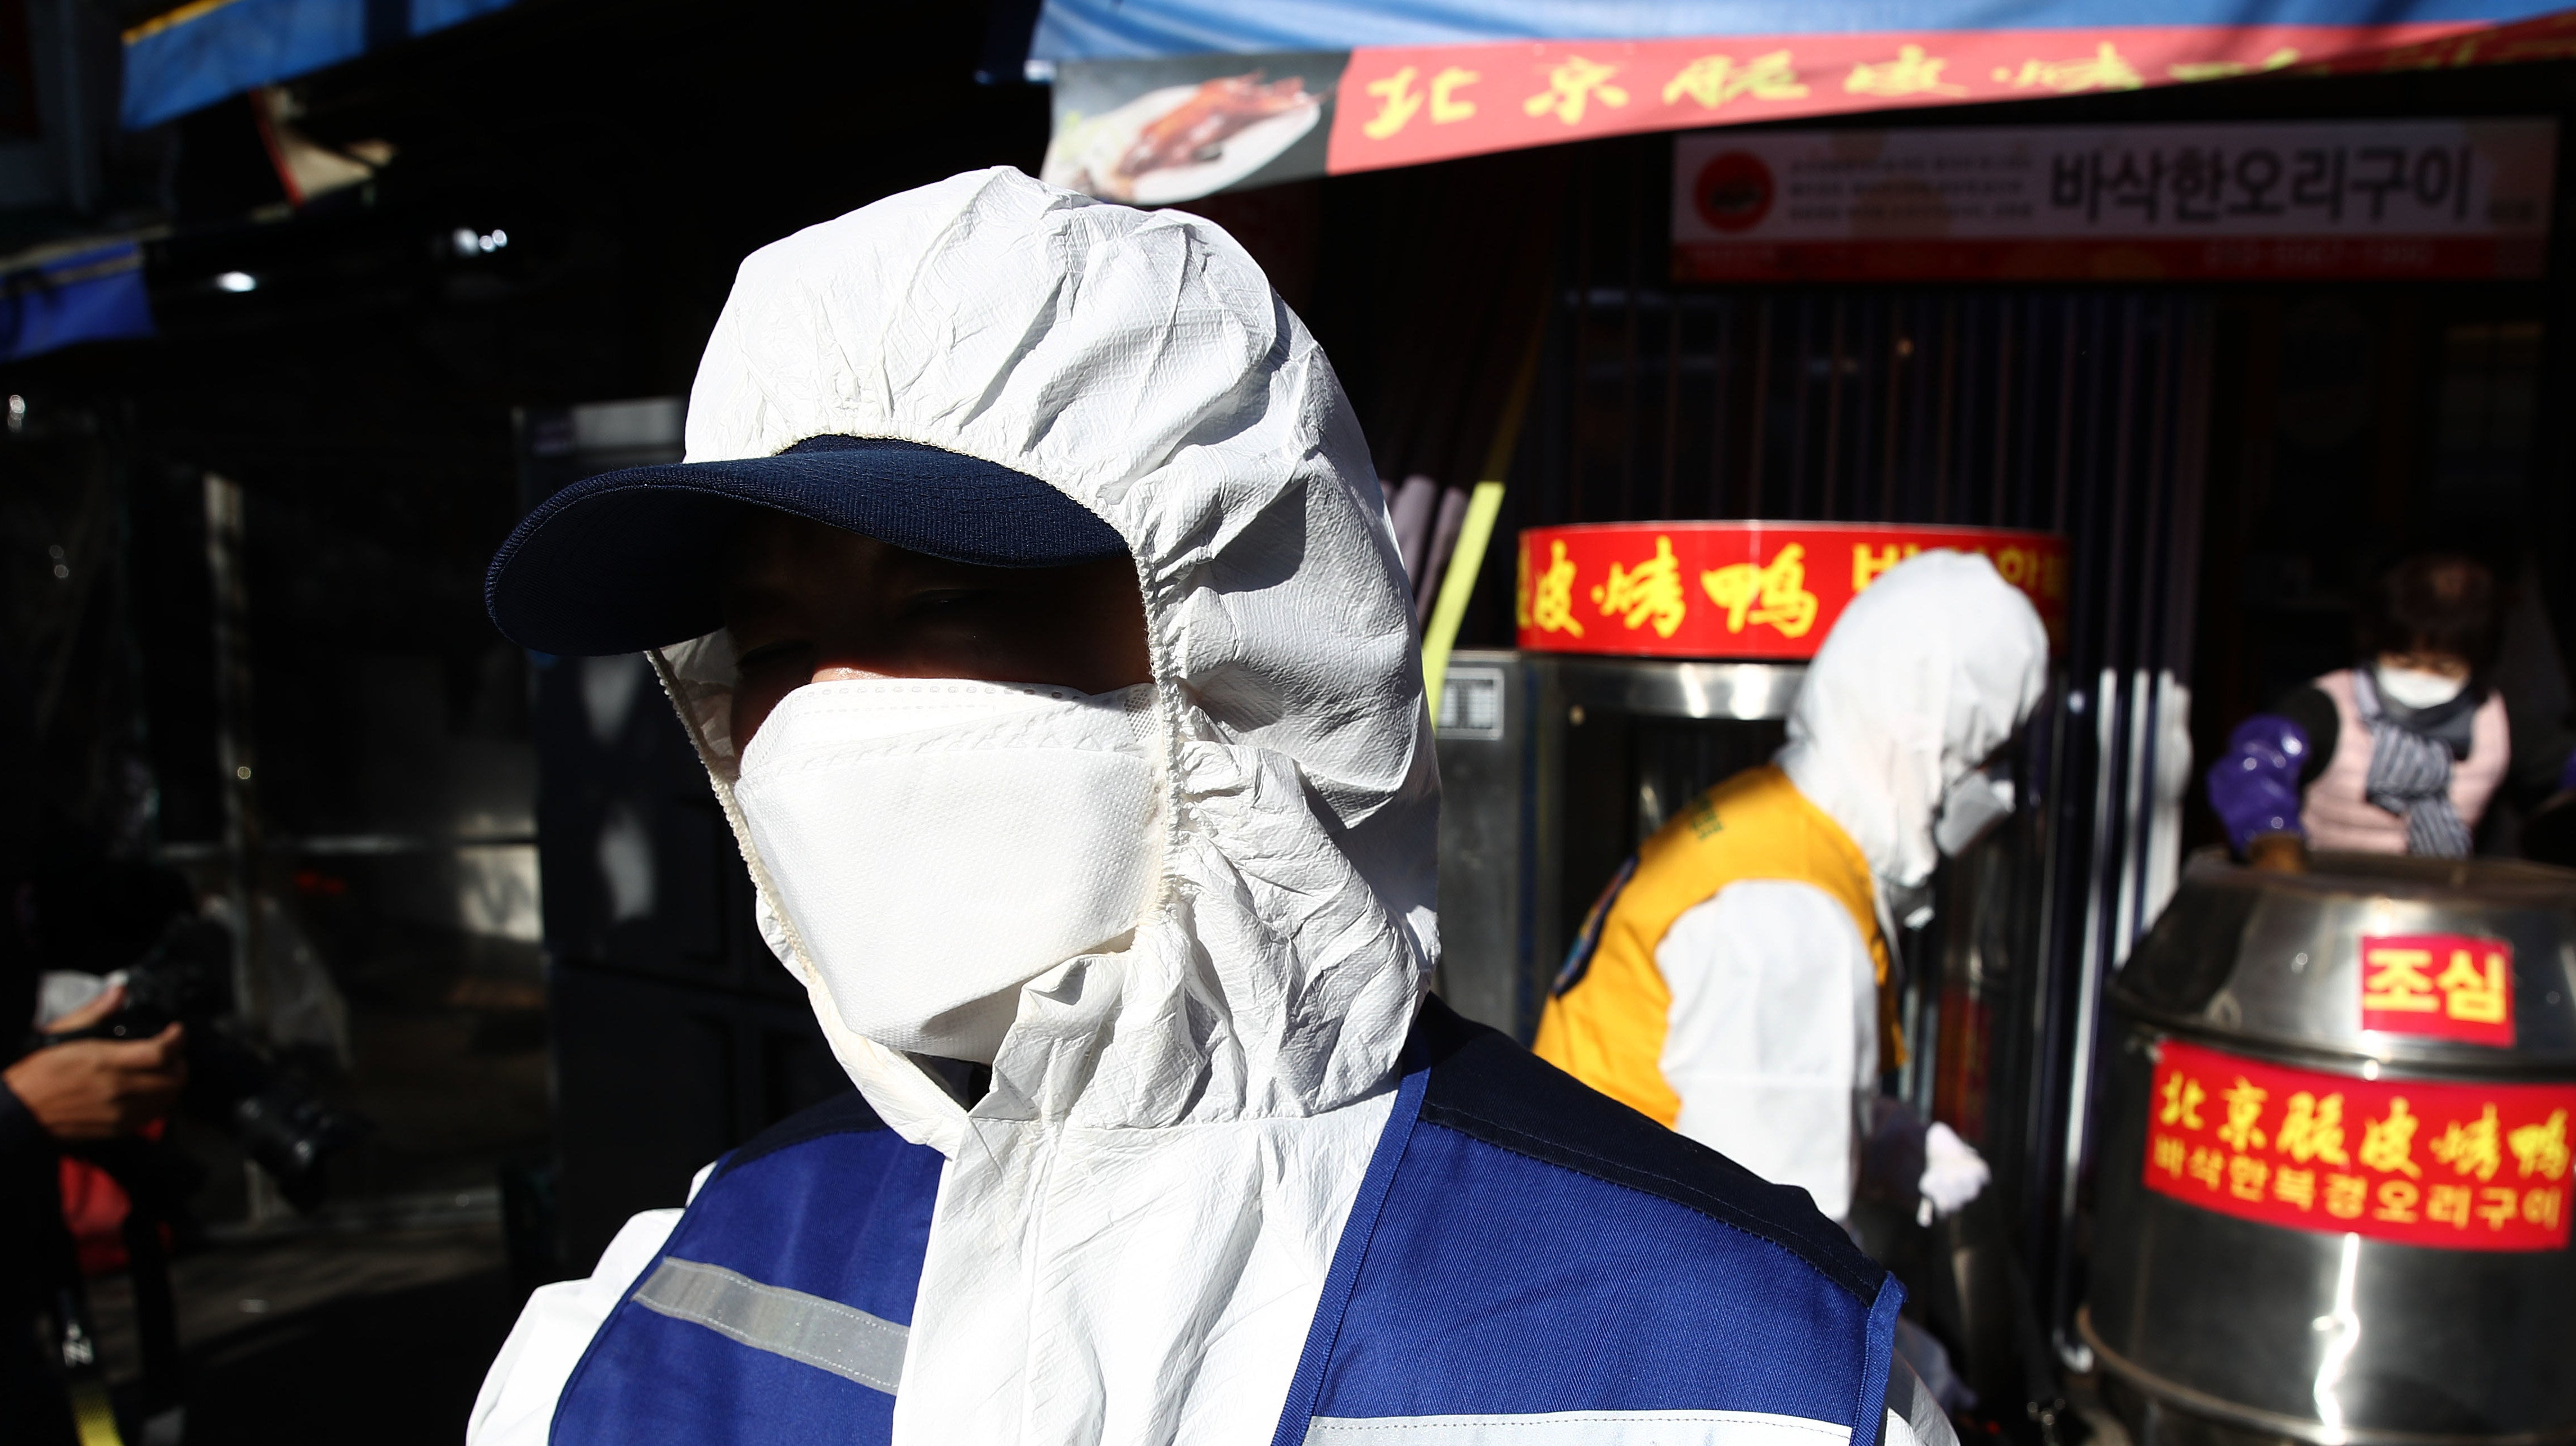 Here's How We'll Know If The Wuhan Coronavirus Has Become A Pandemic